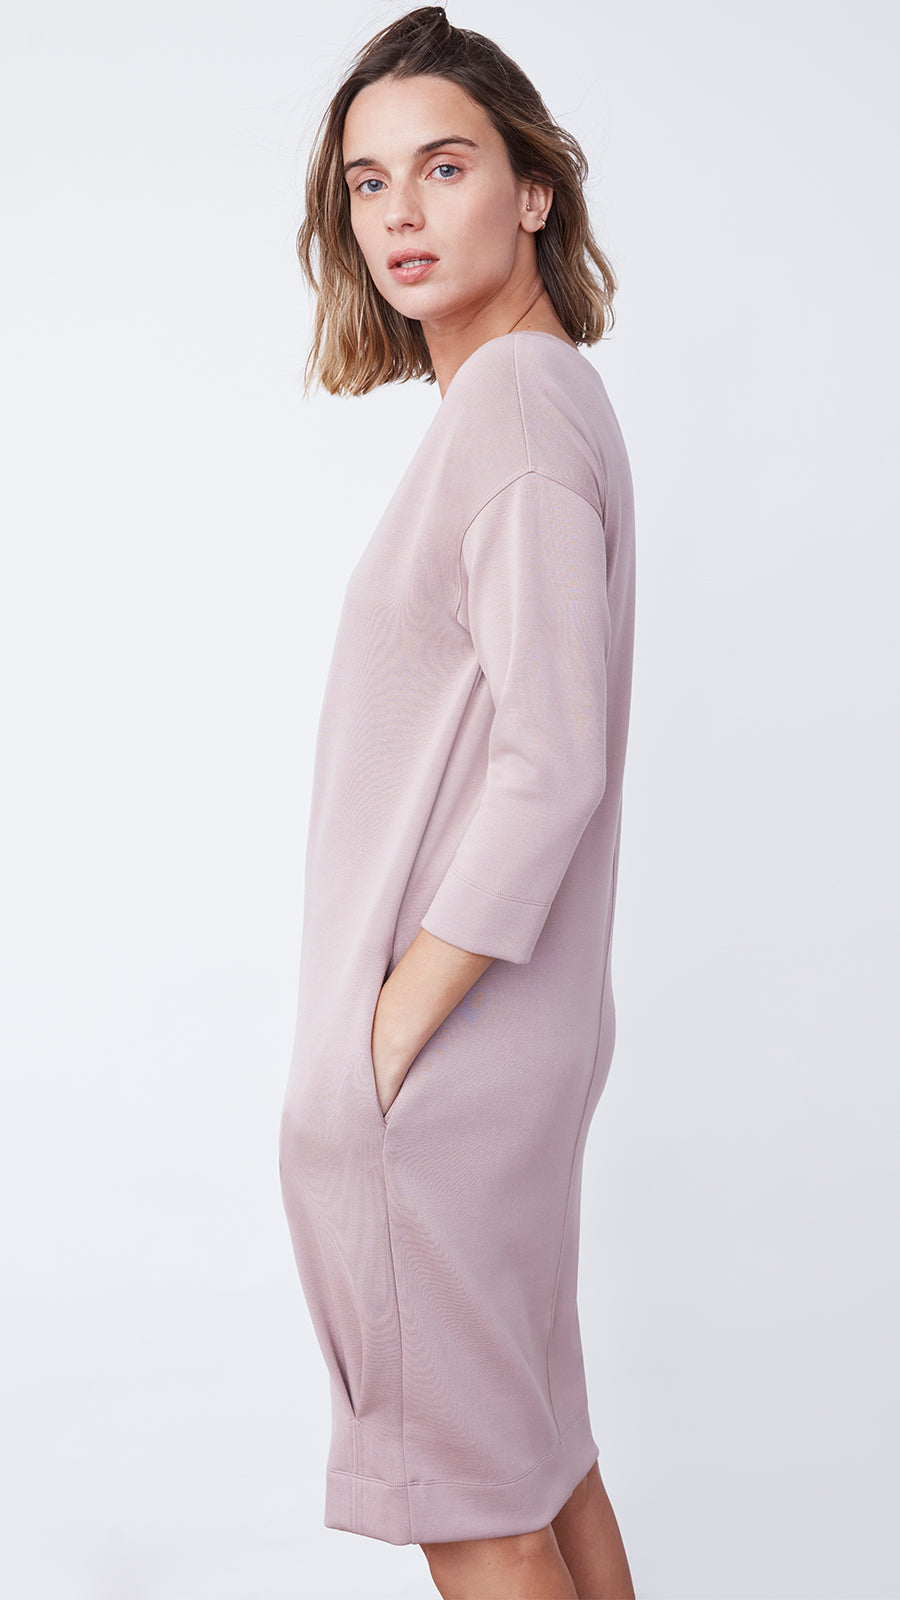 Women's Sustainable Dress by b new york